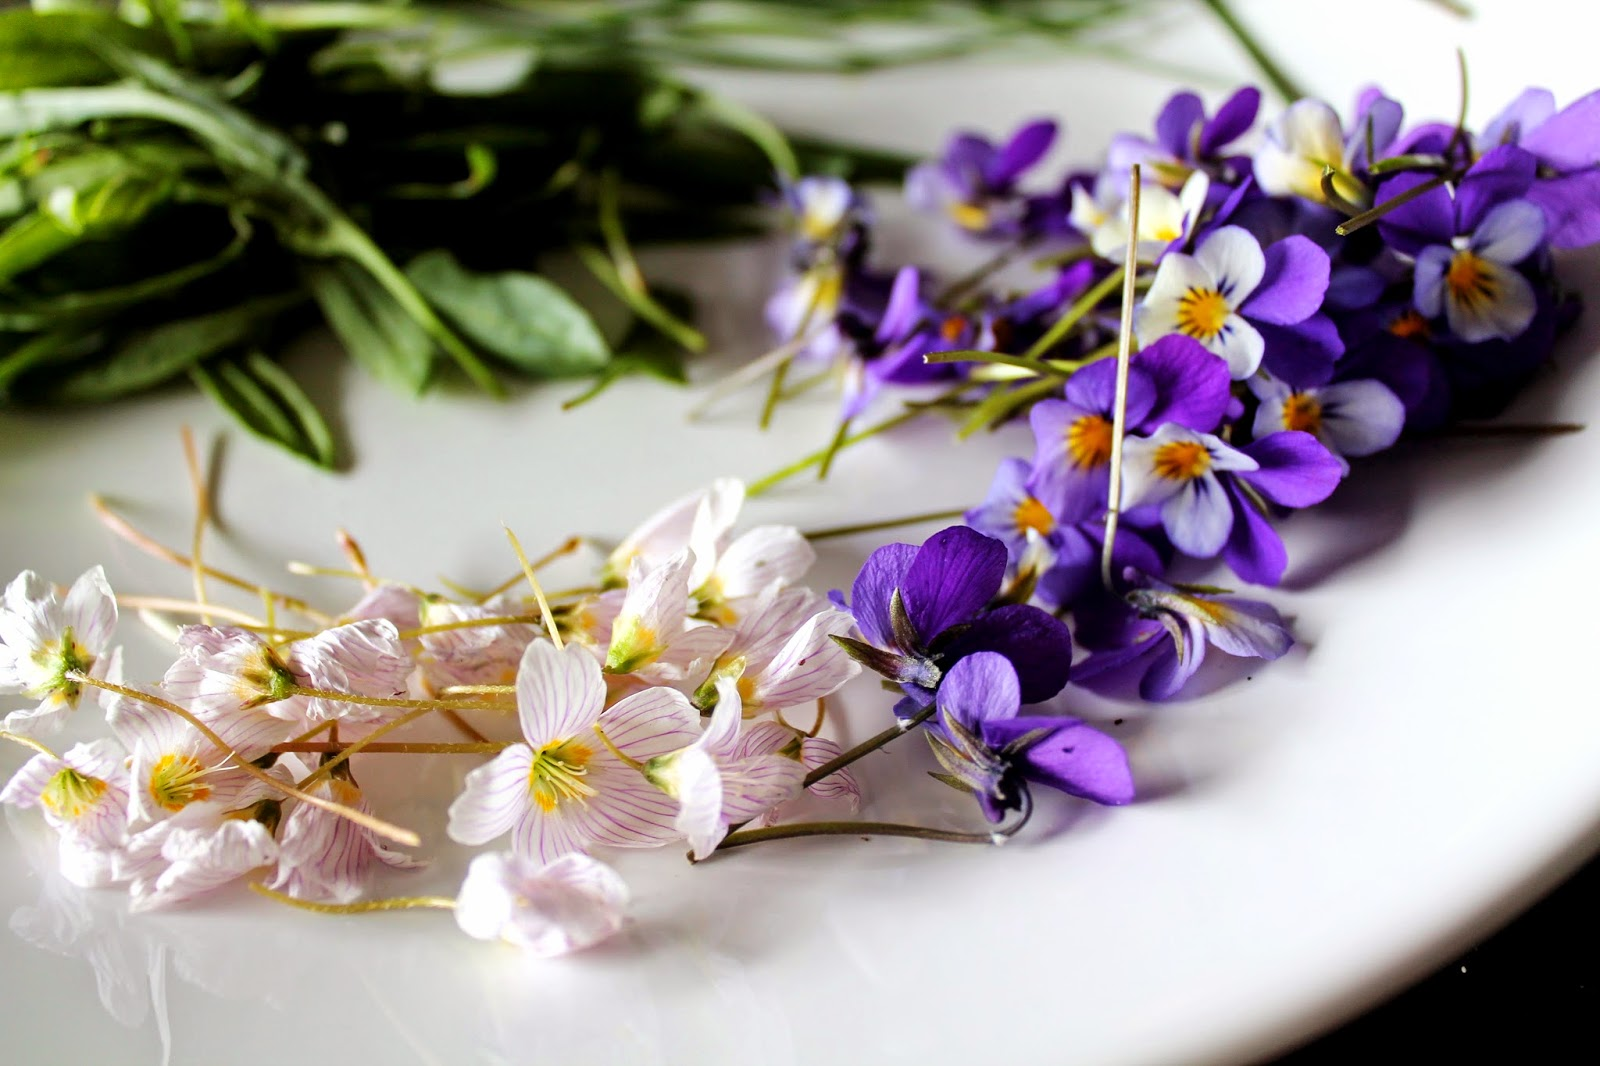 Violets and wood sorrel flower | Alinan kotona blog